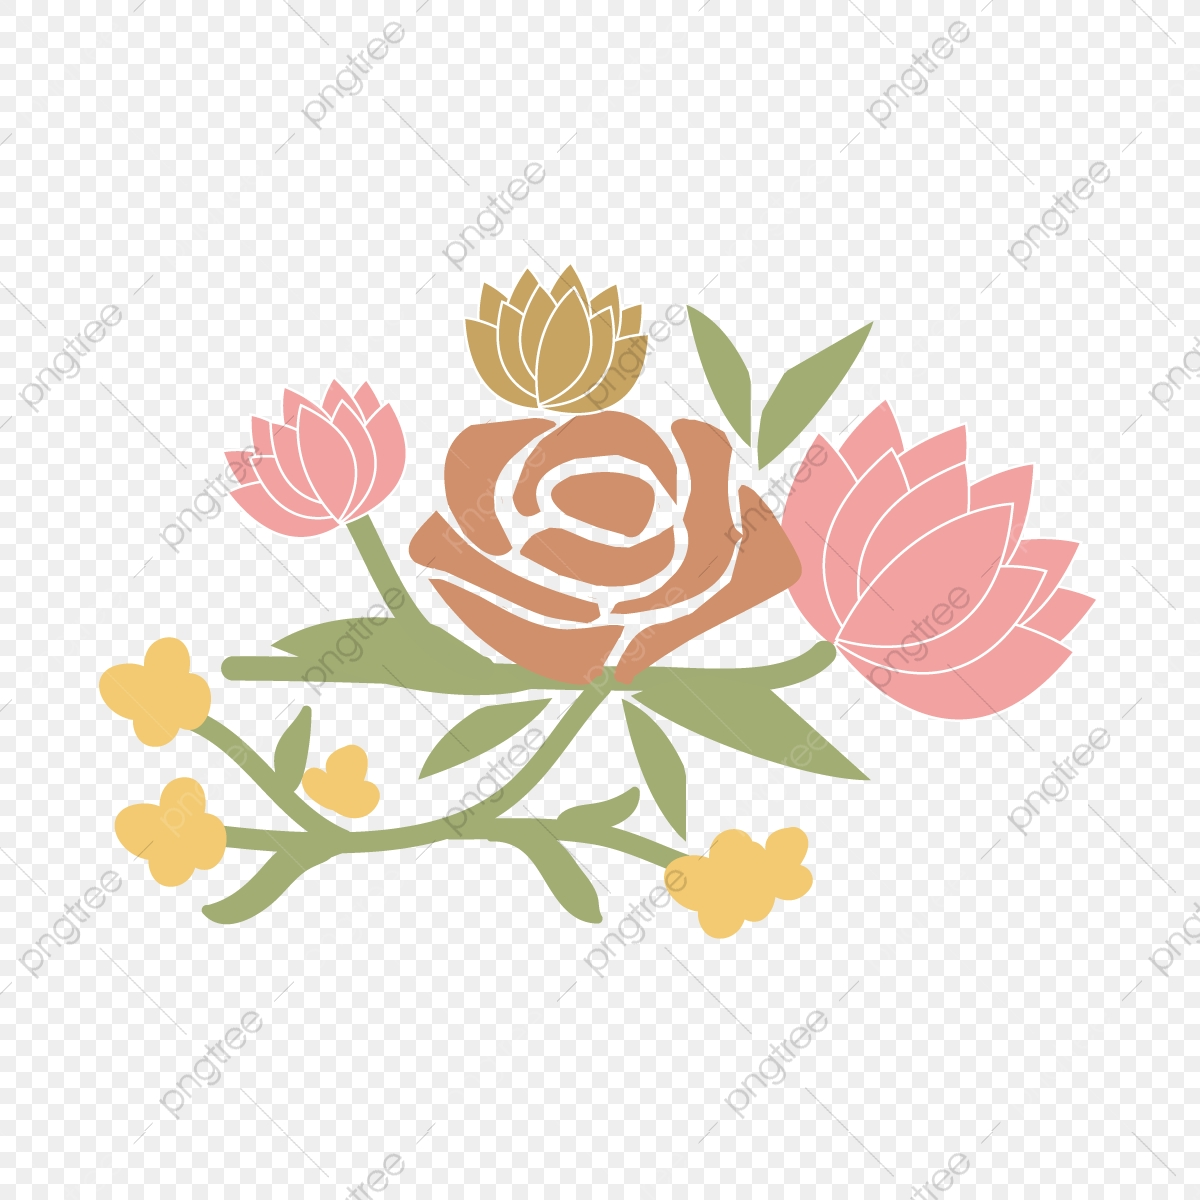 Peonies Png Images Vector And Psd Files Free Download On Pngtree